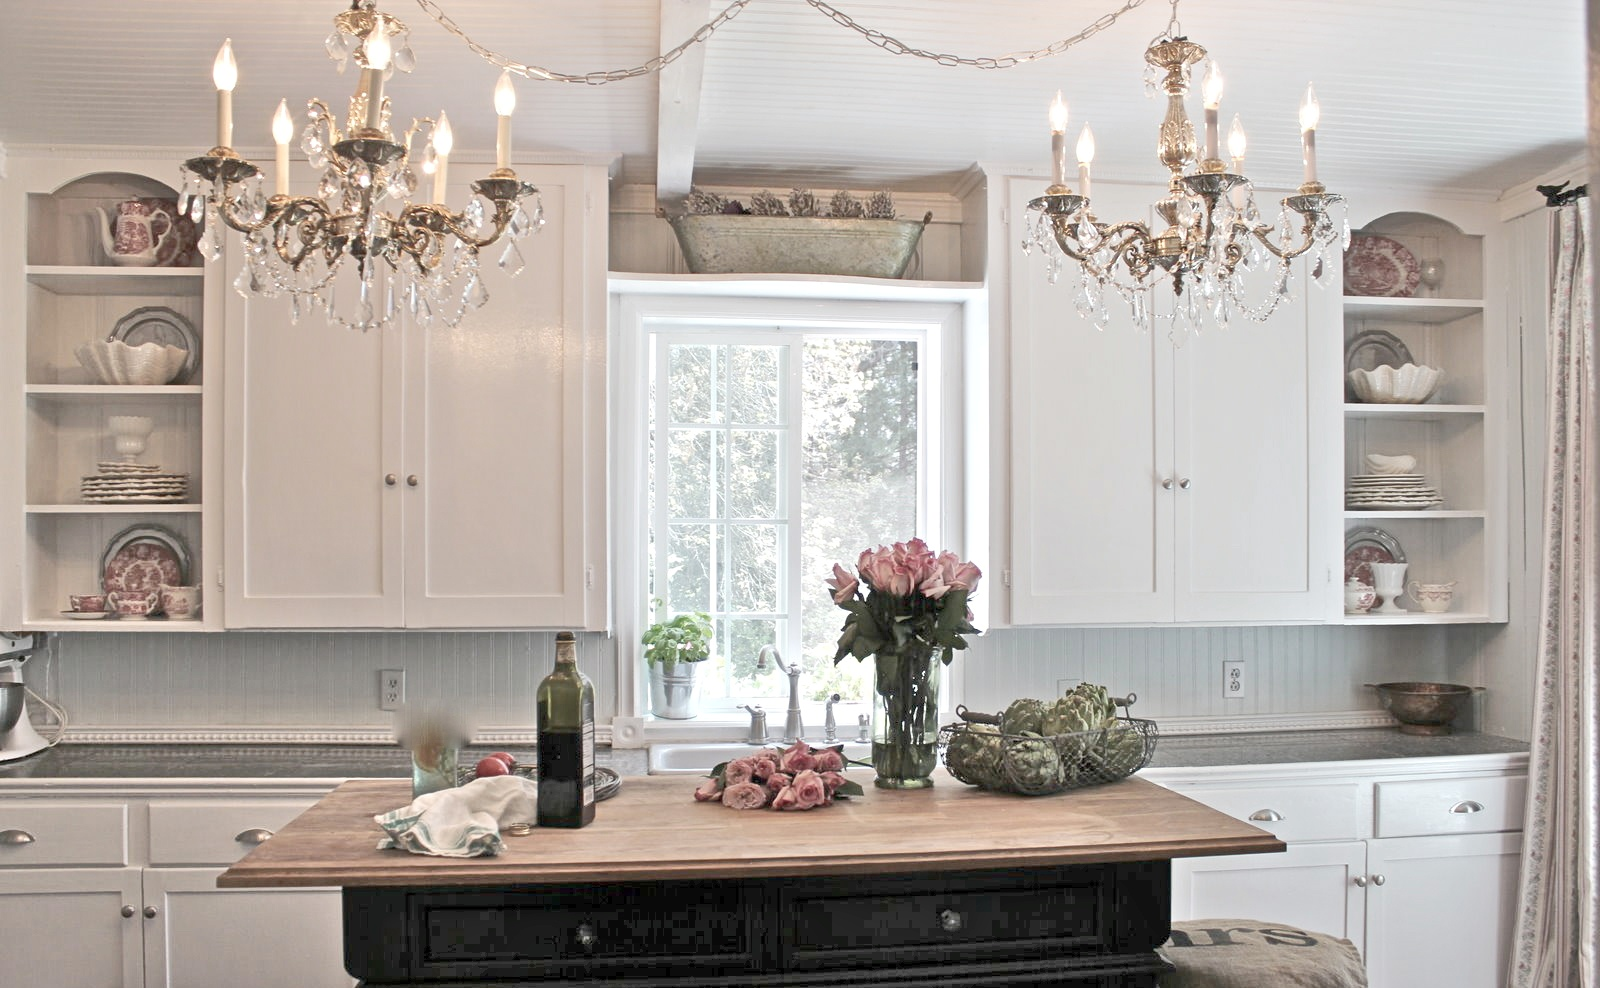 Unique candle chandeliers for your home karlas world couple candle chandeliers and pretty french country kitchen aloadofball Gallery